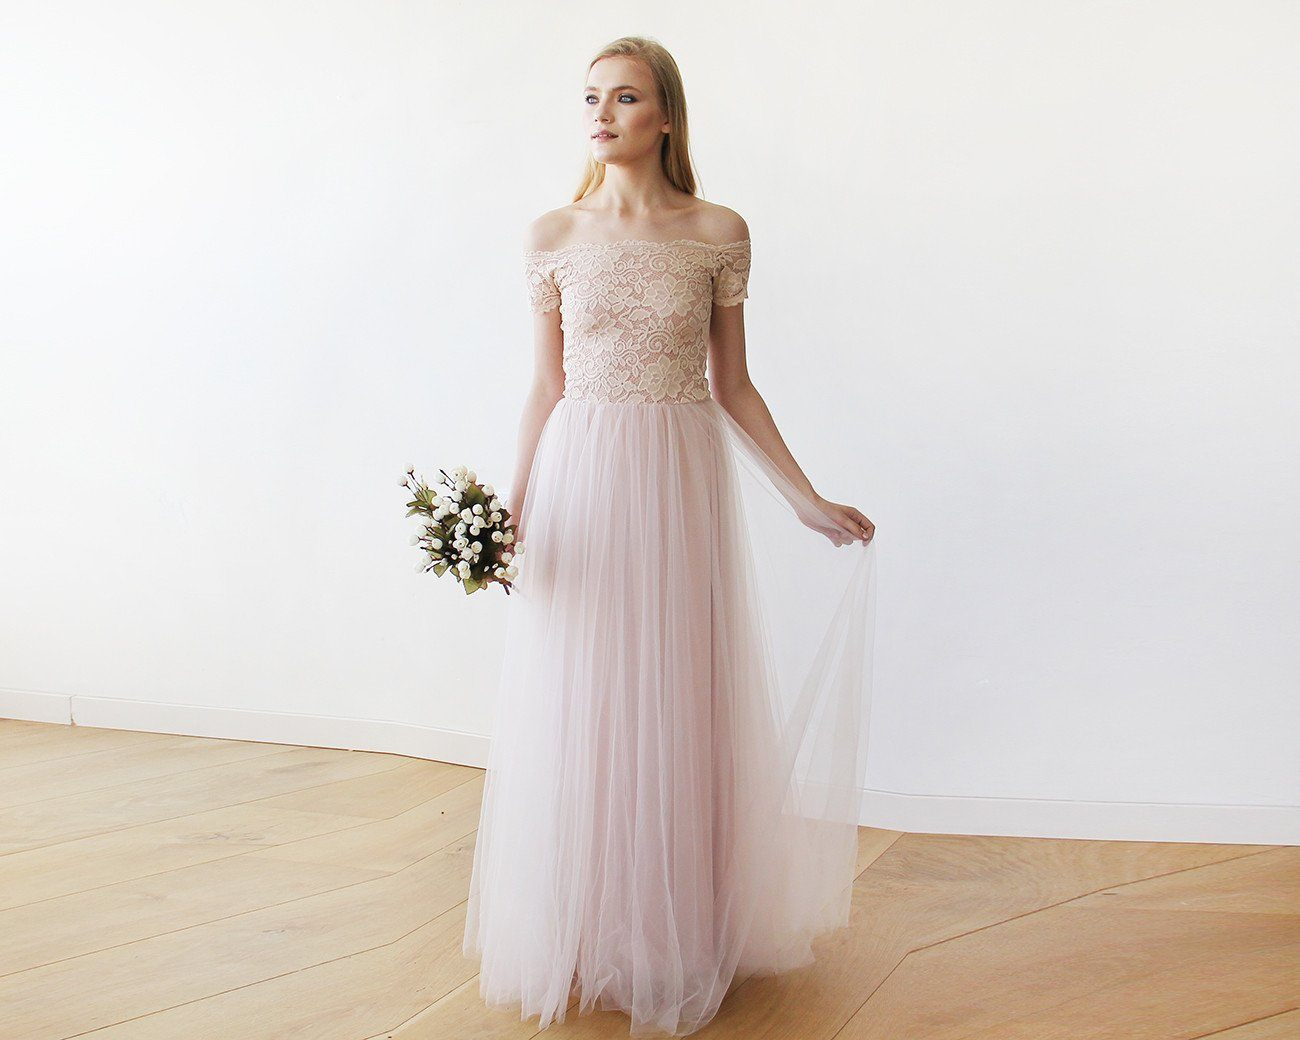 Lace off-shoulders short sleeves maxi blush tulle dress 1139 - Blushfashion